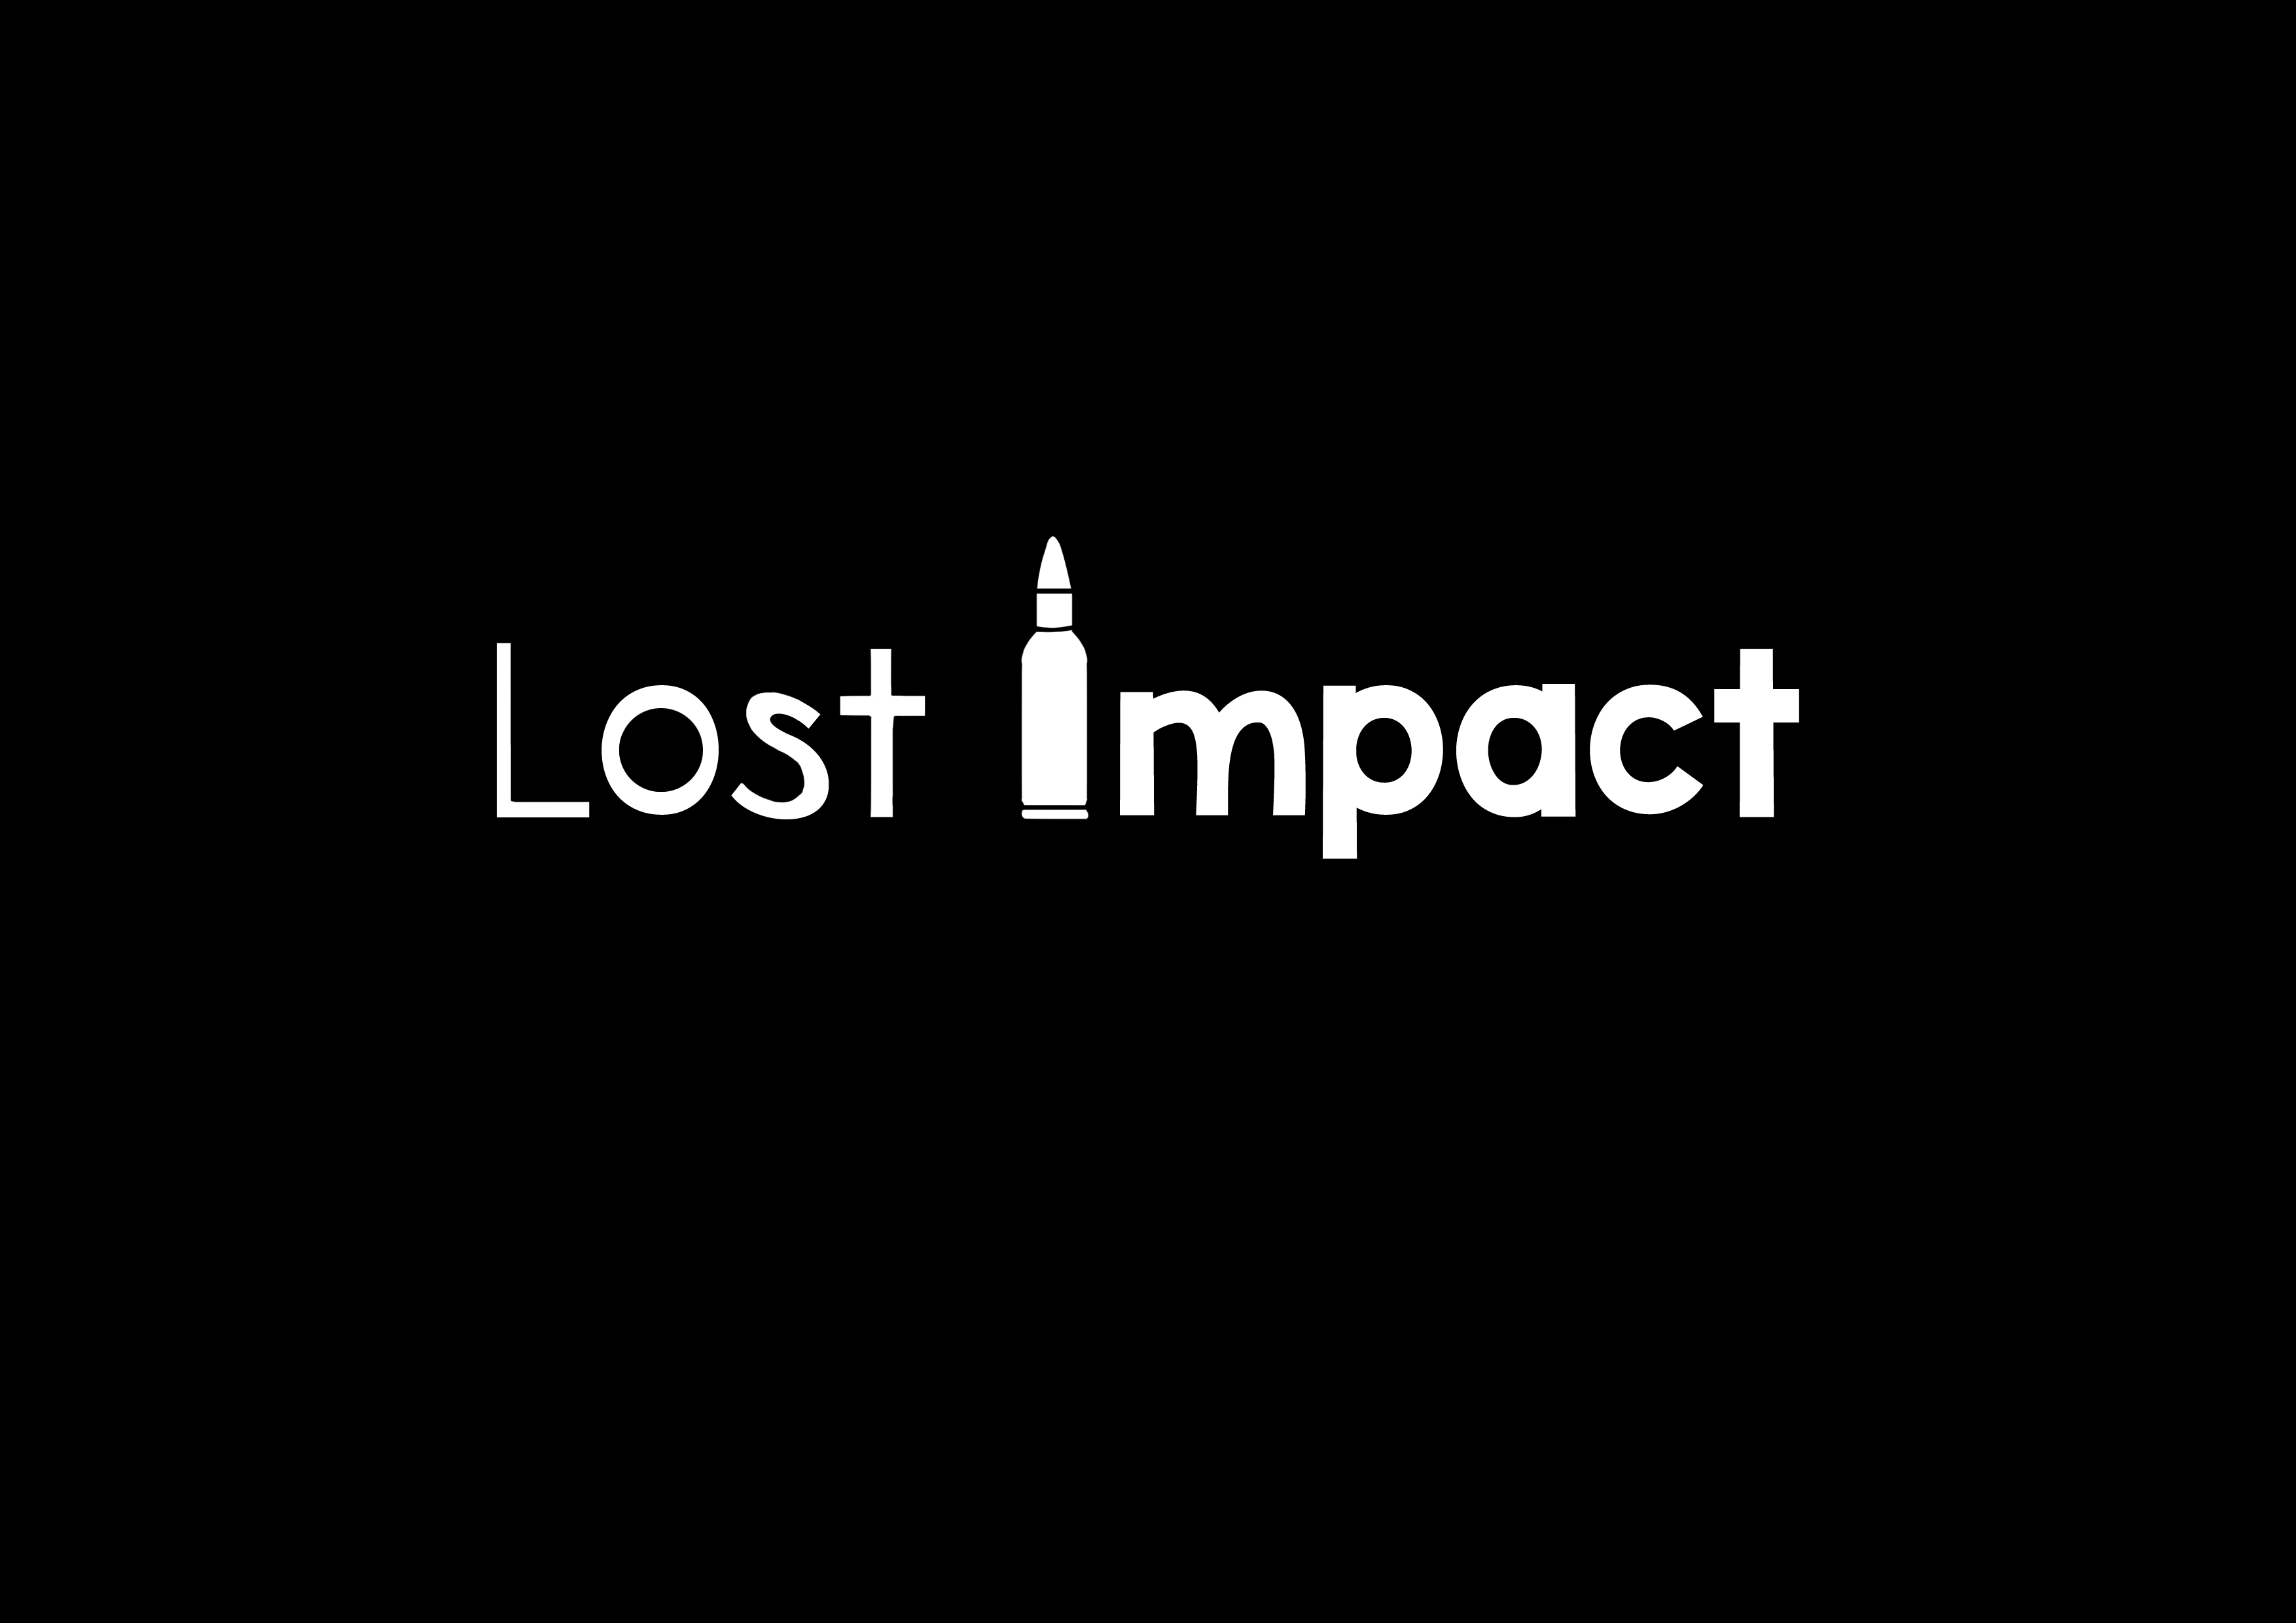 Lost Impact